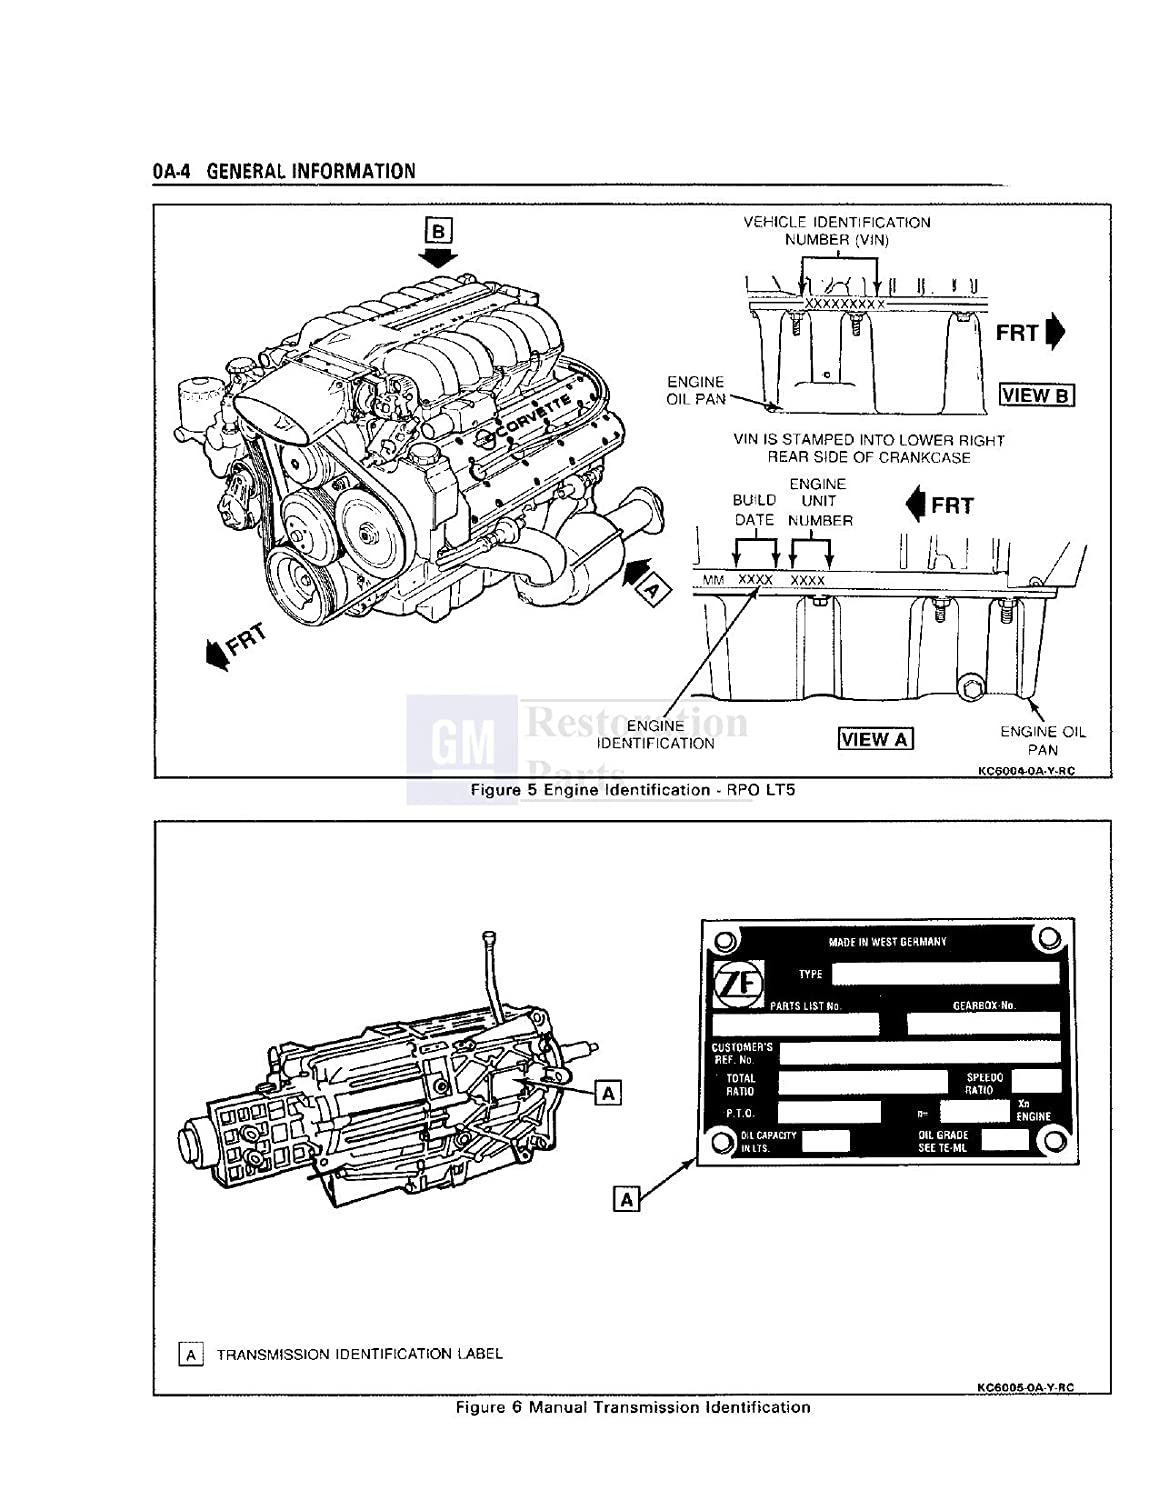 Bishko Automotive Literature 1990 Corvette Shop Service Fire Engine Drivetrain Diagram Repair Manual Book Electrical Oem